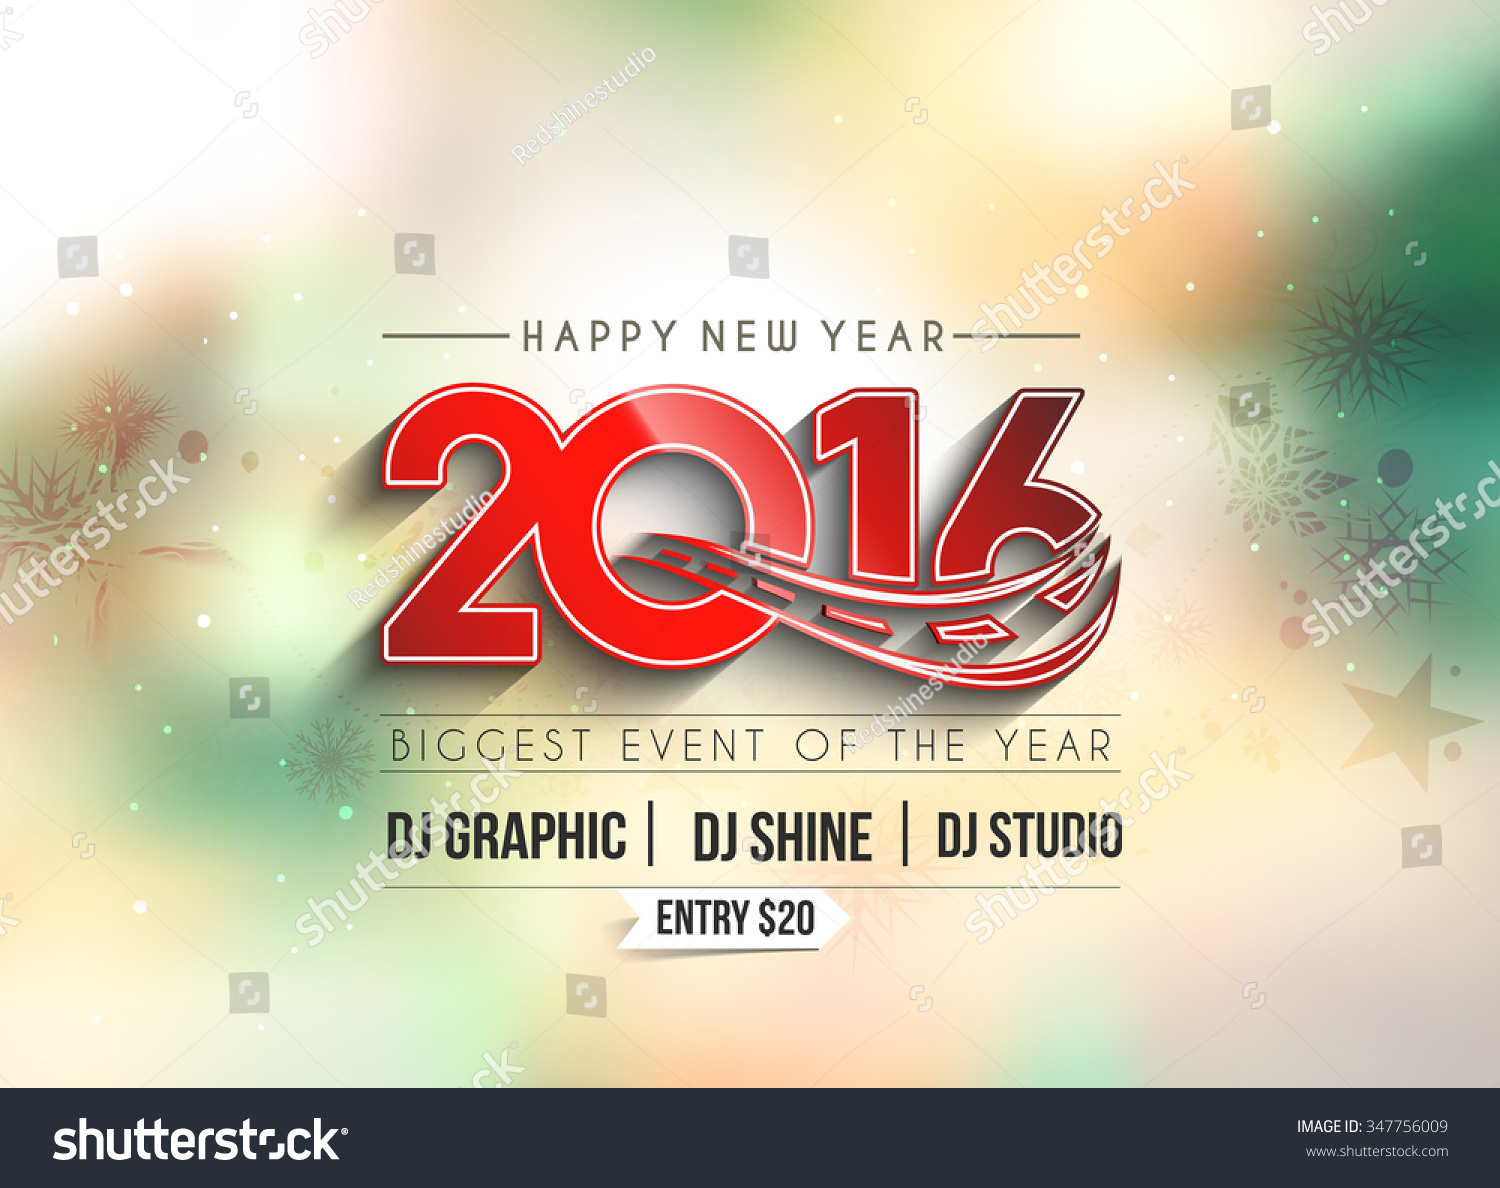 New Year Party Flyer Poster Template Design Vector – New Year Poster Template